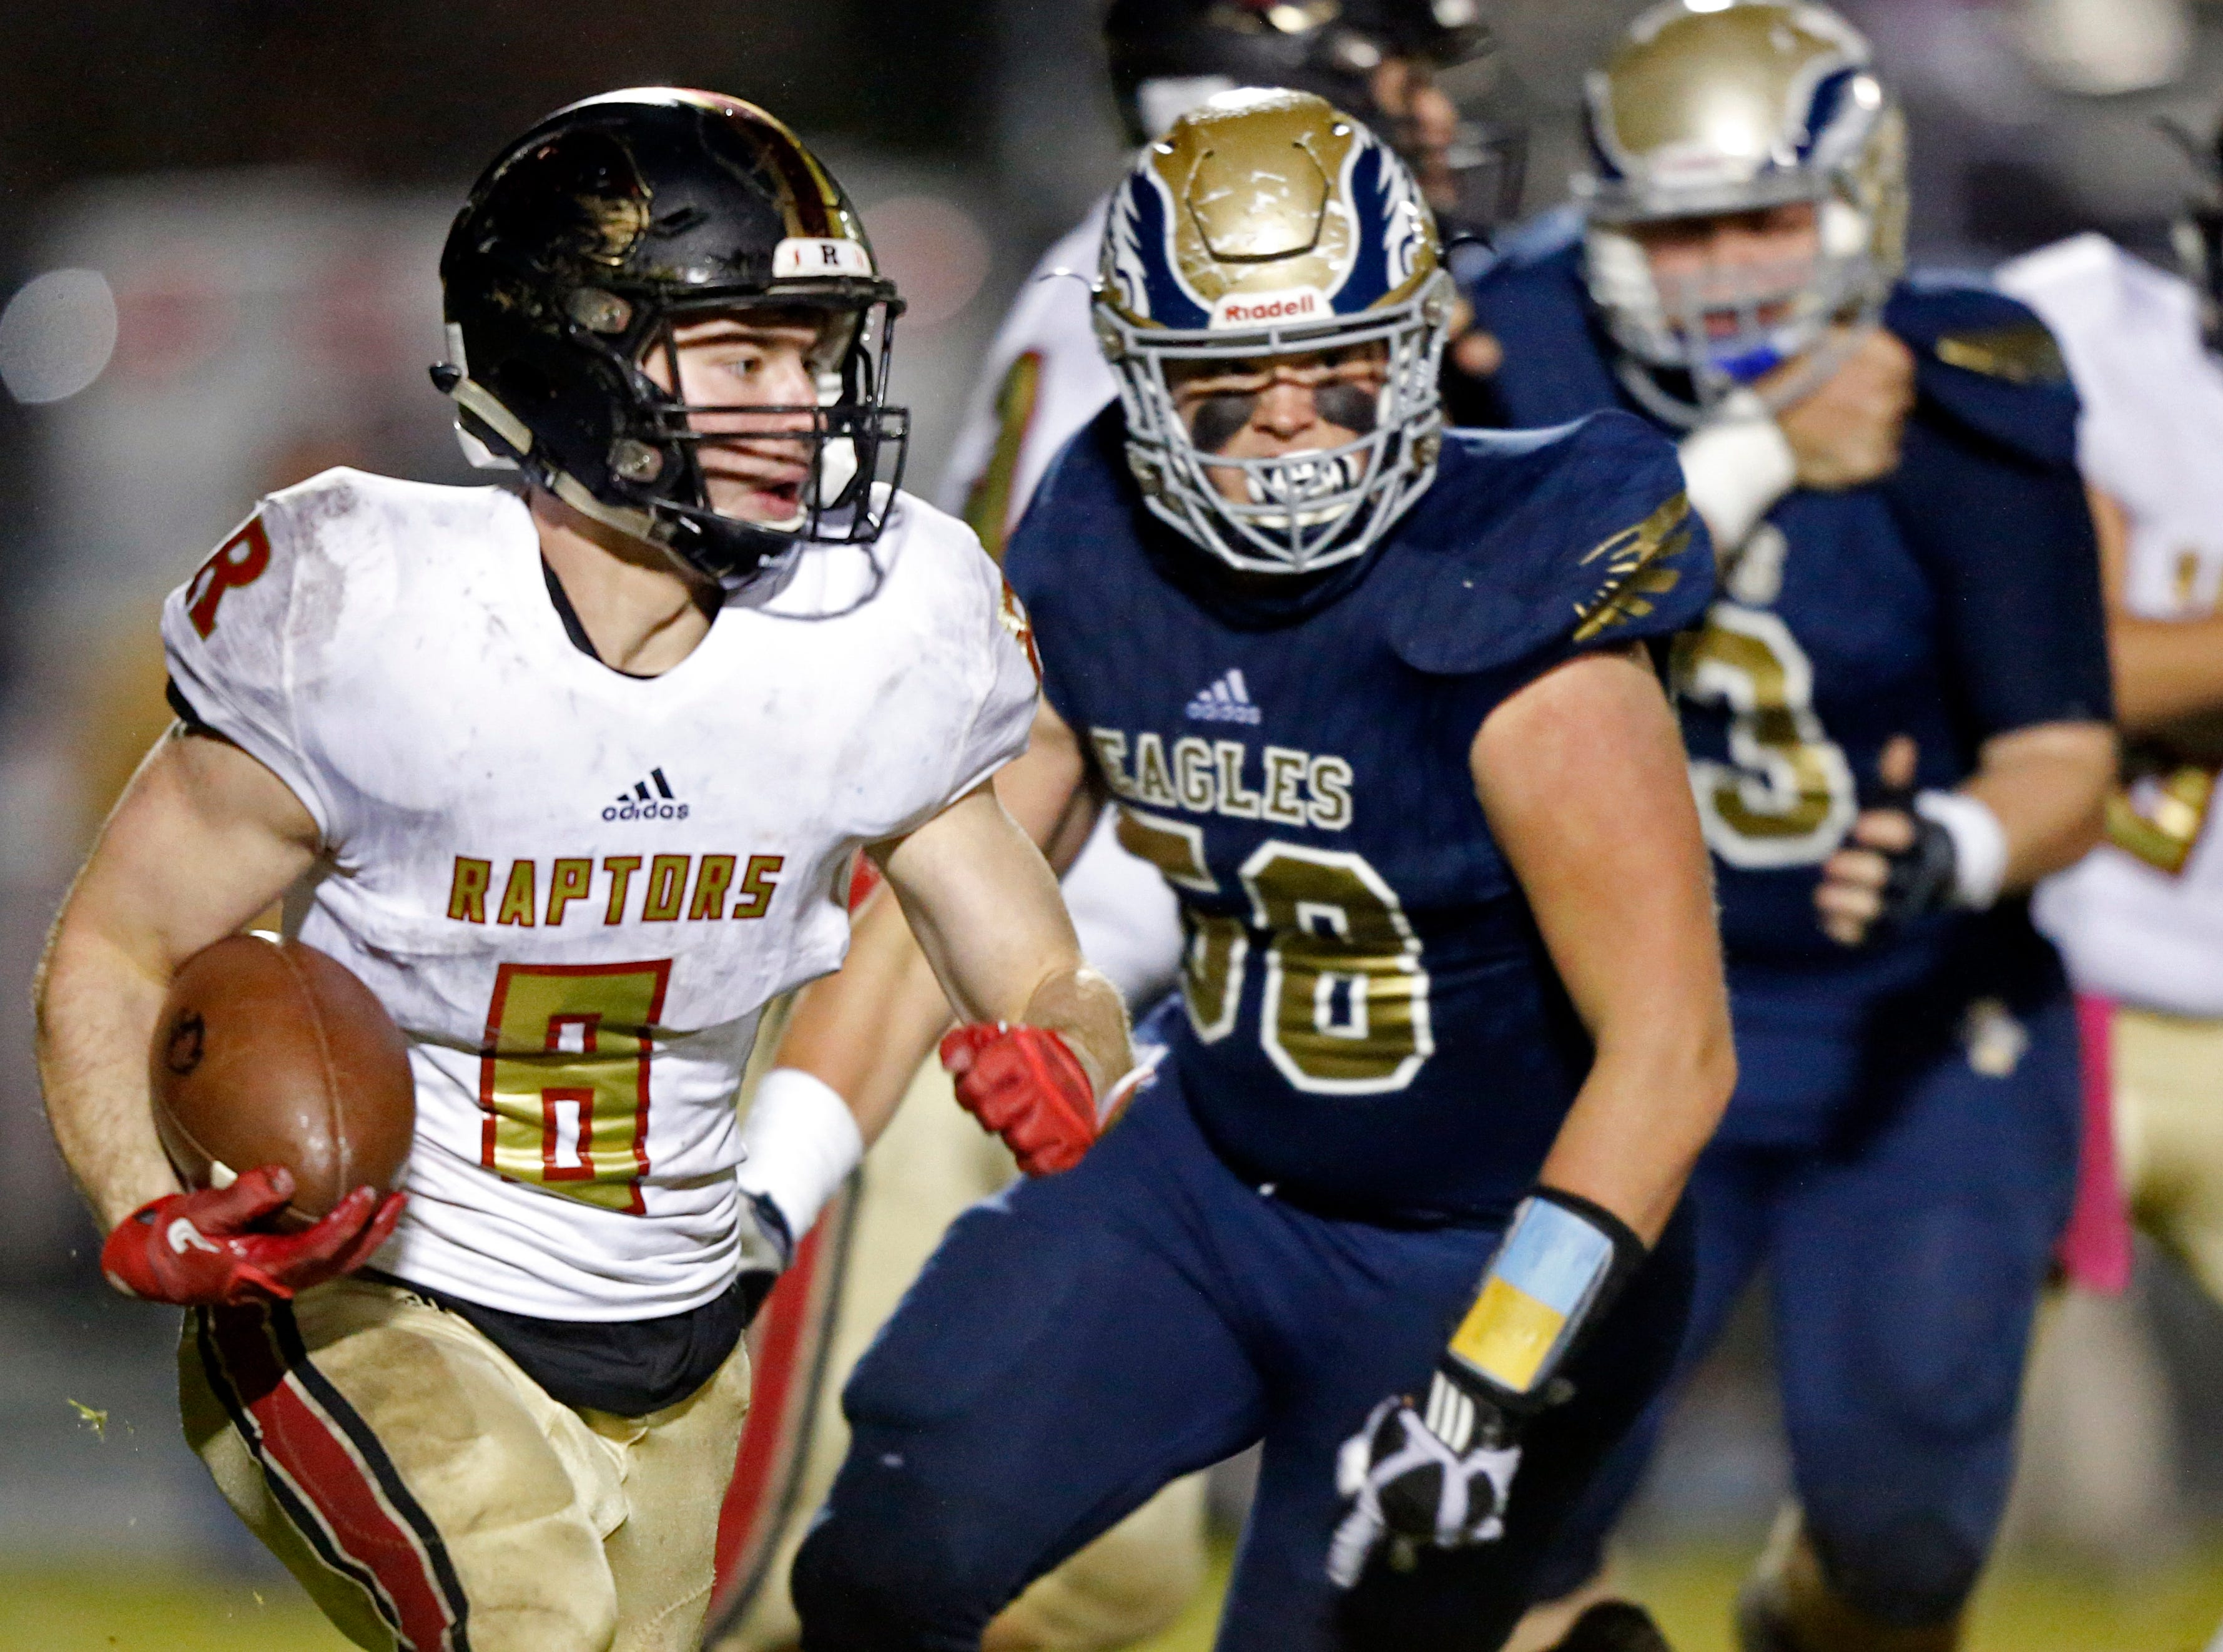 Ravenwood's William Baine runs for yardage as he's chased by Caleb Lanford of Independence during their game Friday, Oct. 26, 2018, in Thompsons Station, Tenn.